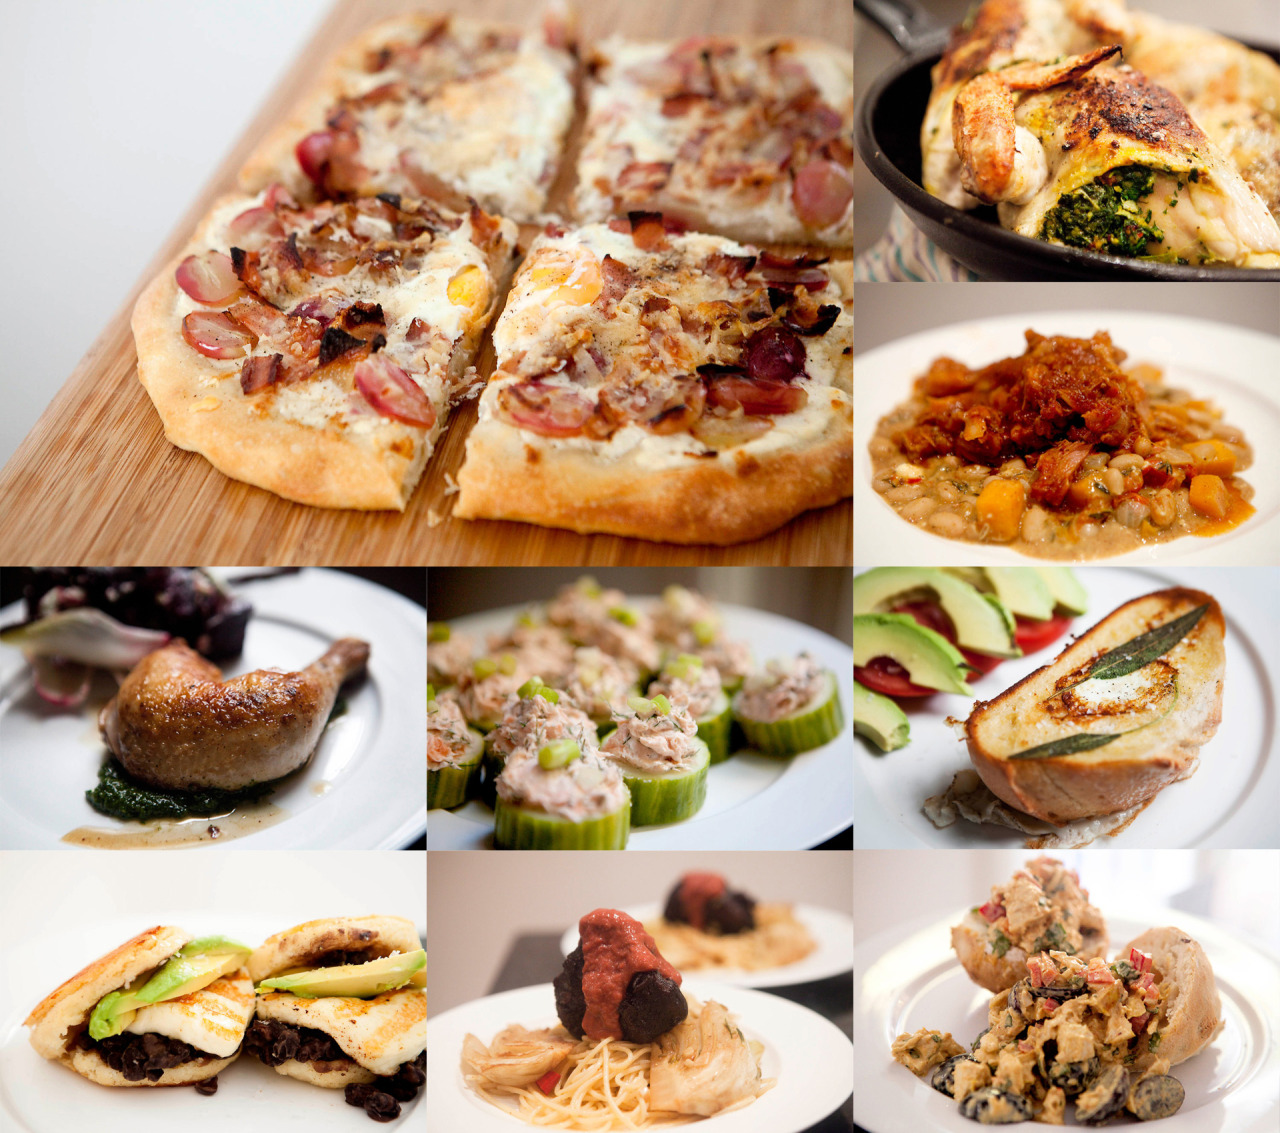 2012 Recipe Roundup That's it for me this year.  Here are my favorites from 2012: Best way to spend a RAINY DAY: Pulled Pork with Cannellini Beans, Butternut Squash and Tomato Best HANGOVER cure: Arepas with Black Beans, Haloumi and Avocado Best way to make your COWORKERS jealous: Curried Chicken Salad with Grapes, Almonds, Cilantro and Red Pepper Best INVENTION: Grape, Prosciutto, Parmesan and Egg Pizza Best CELEBRITY CHEF recipe: Neil Perry's Chicken Stuffed with Garlic and Coriander Best dinner for ONE: Pan Roasted Chicken with Pesto Best LEFTOVERS: Balsamic and Pomegranate Short Ribs with Bacon, Mushroom and Sun-Dried Tomato Trofil Best way to make your friends HATE you: Smoked Salmon Dip in Cucumber Cups Best BRUNCH at home: Sage Toad in the Hole with Tomato and Avocado Best dish made with a WEIRD cut of meat: Master Stock Beef Cheeks with Spicy Rhubarb Sauce, Orange Salt, and Braised Fennel Best SIDE dish: Saffron Sweet Potato Fries with Cilantro Lime Dipping Sauce What have I missed?